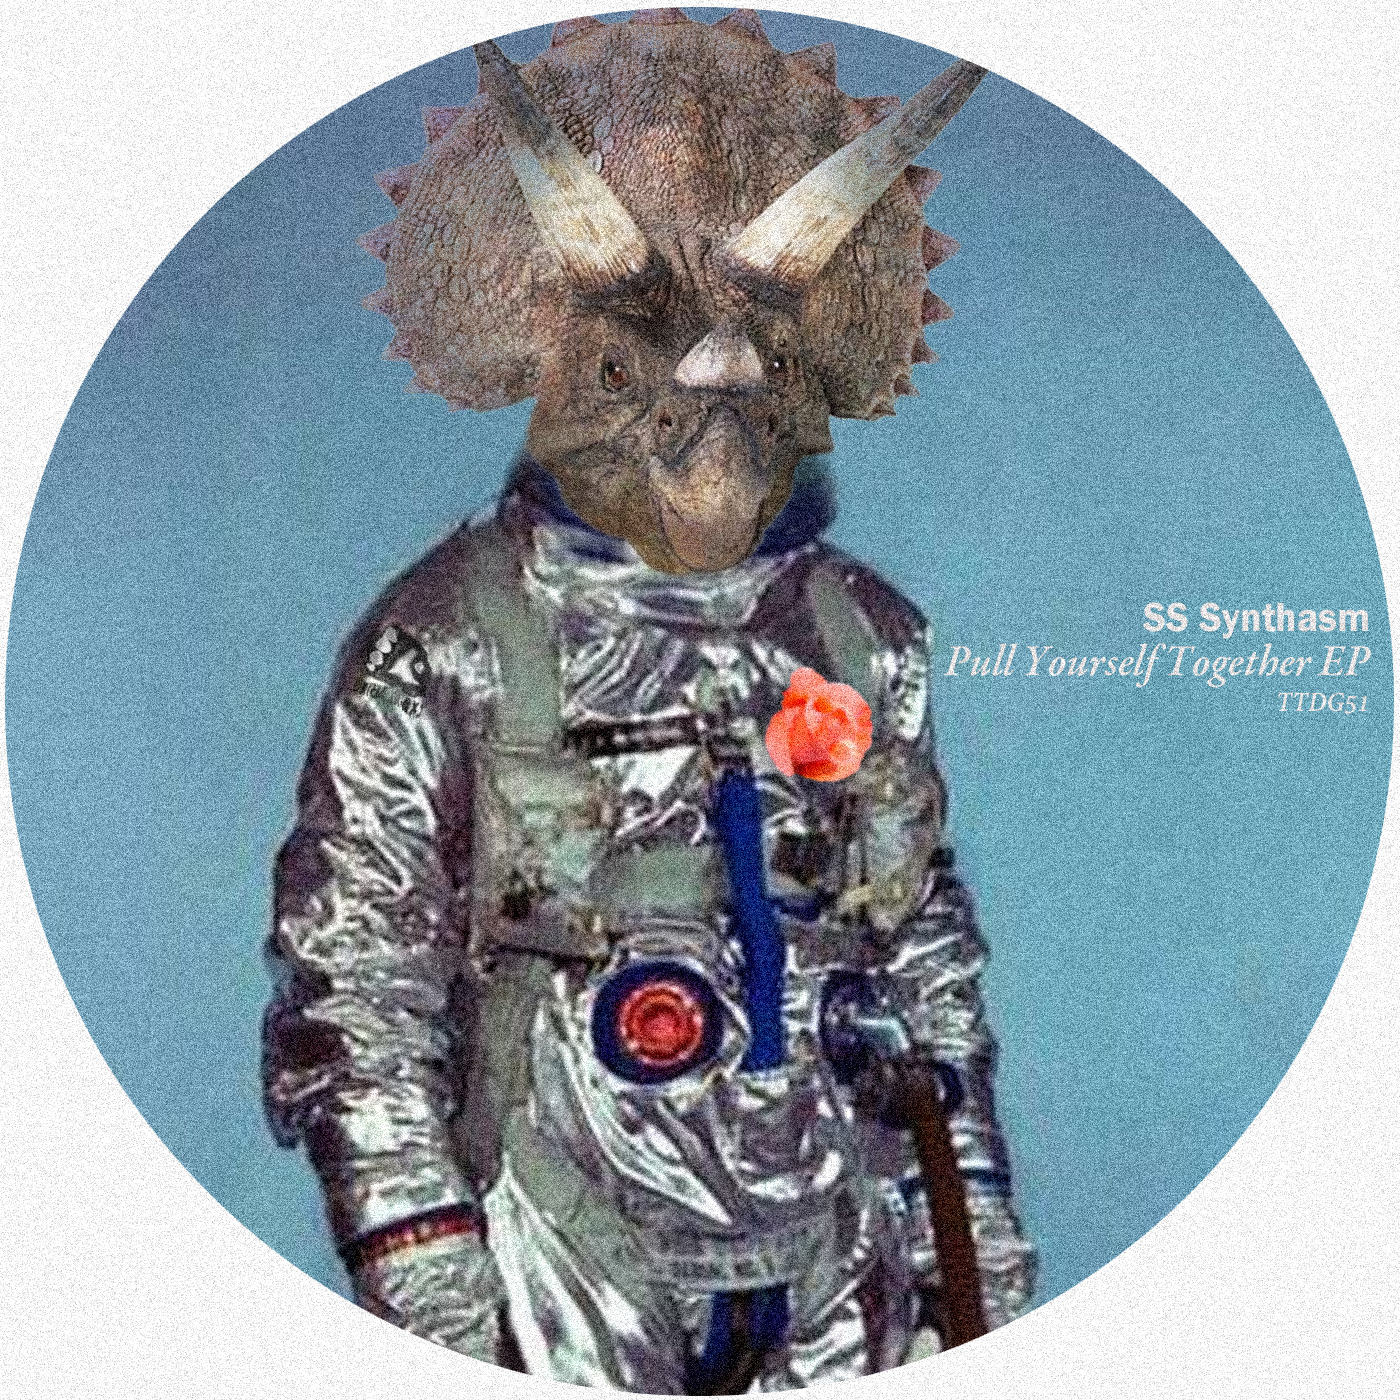 Pull Yourself Together EP by SS Synthasm